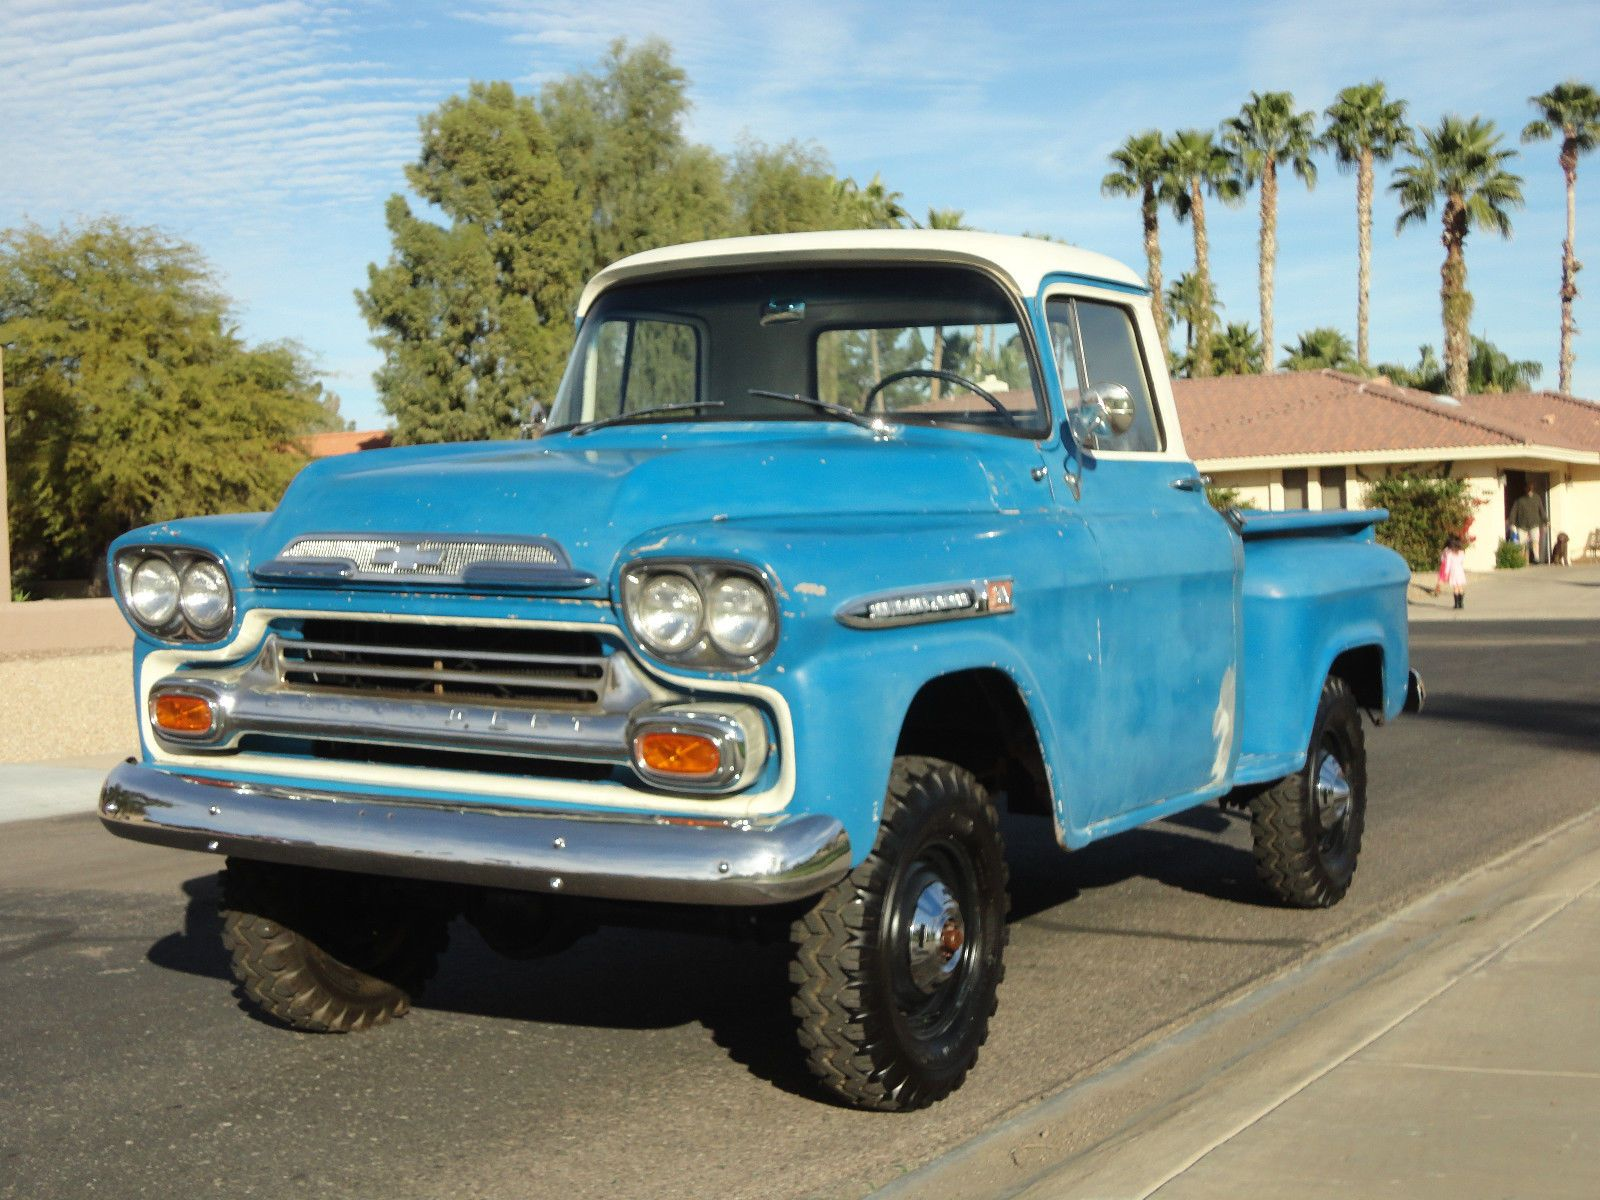 1959 Chevy 1 2 Ton Shortbed Napco 4x4 For Sale In Scottsdale Arizona United States Vintage Trucks Chevy Chevy Trucks For Sale Chevy Trucks